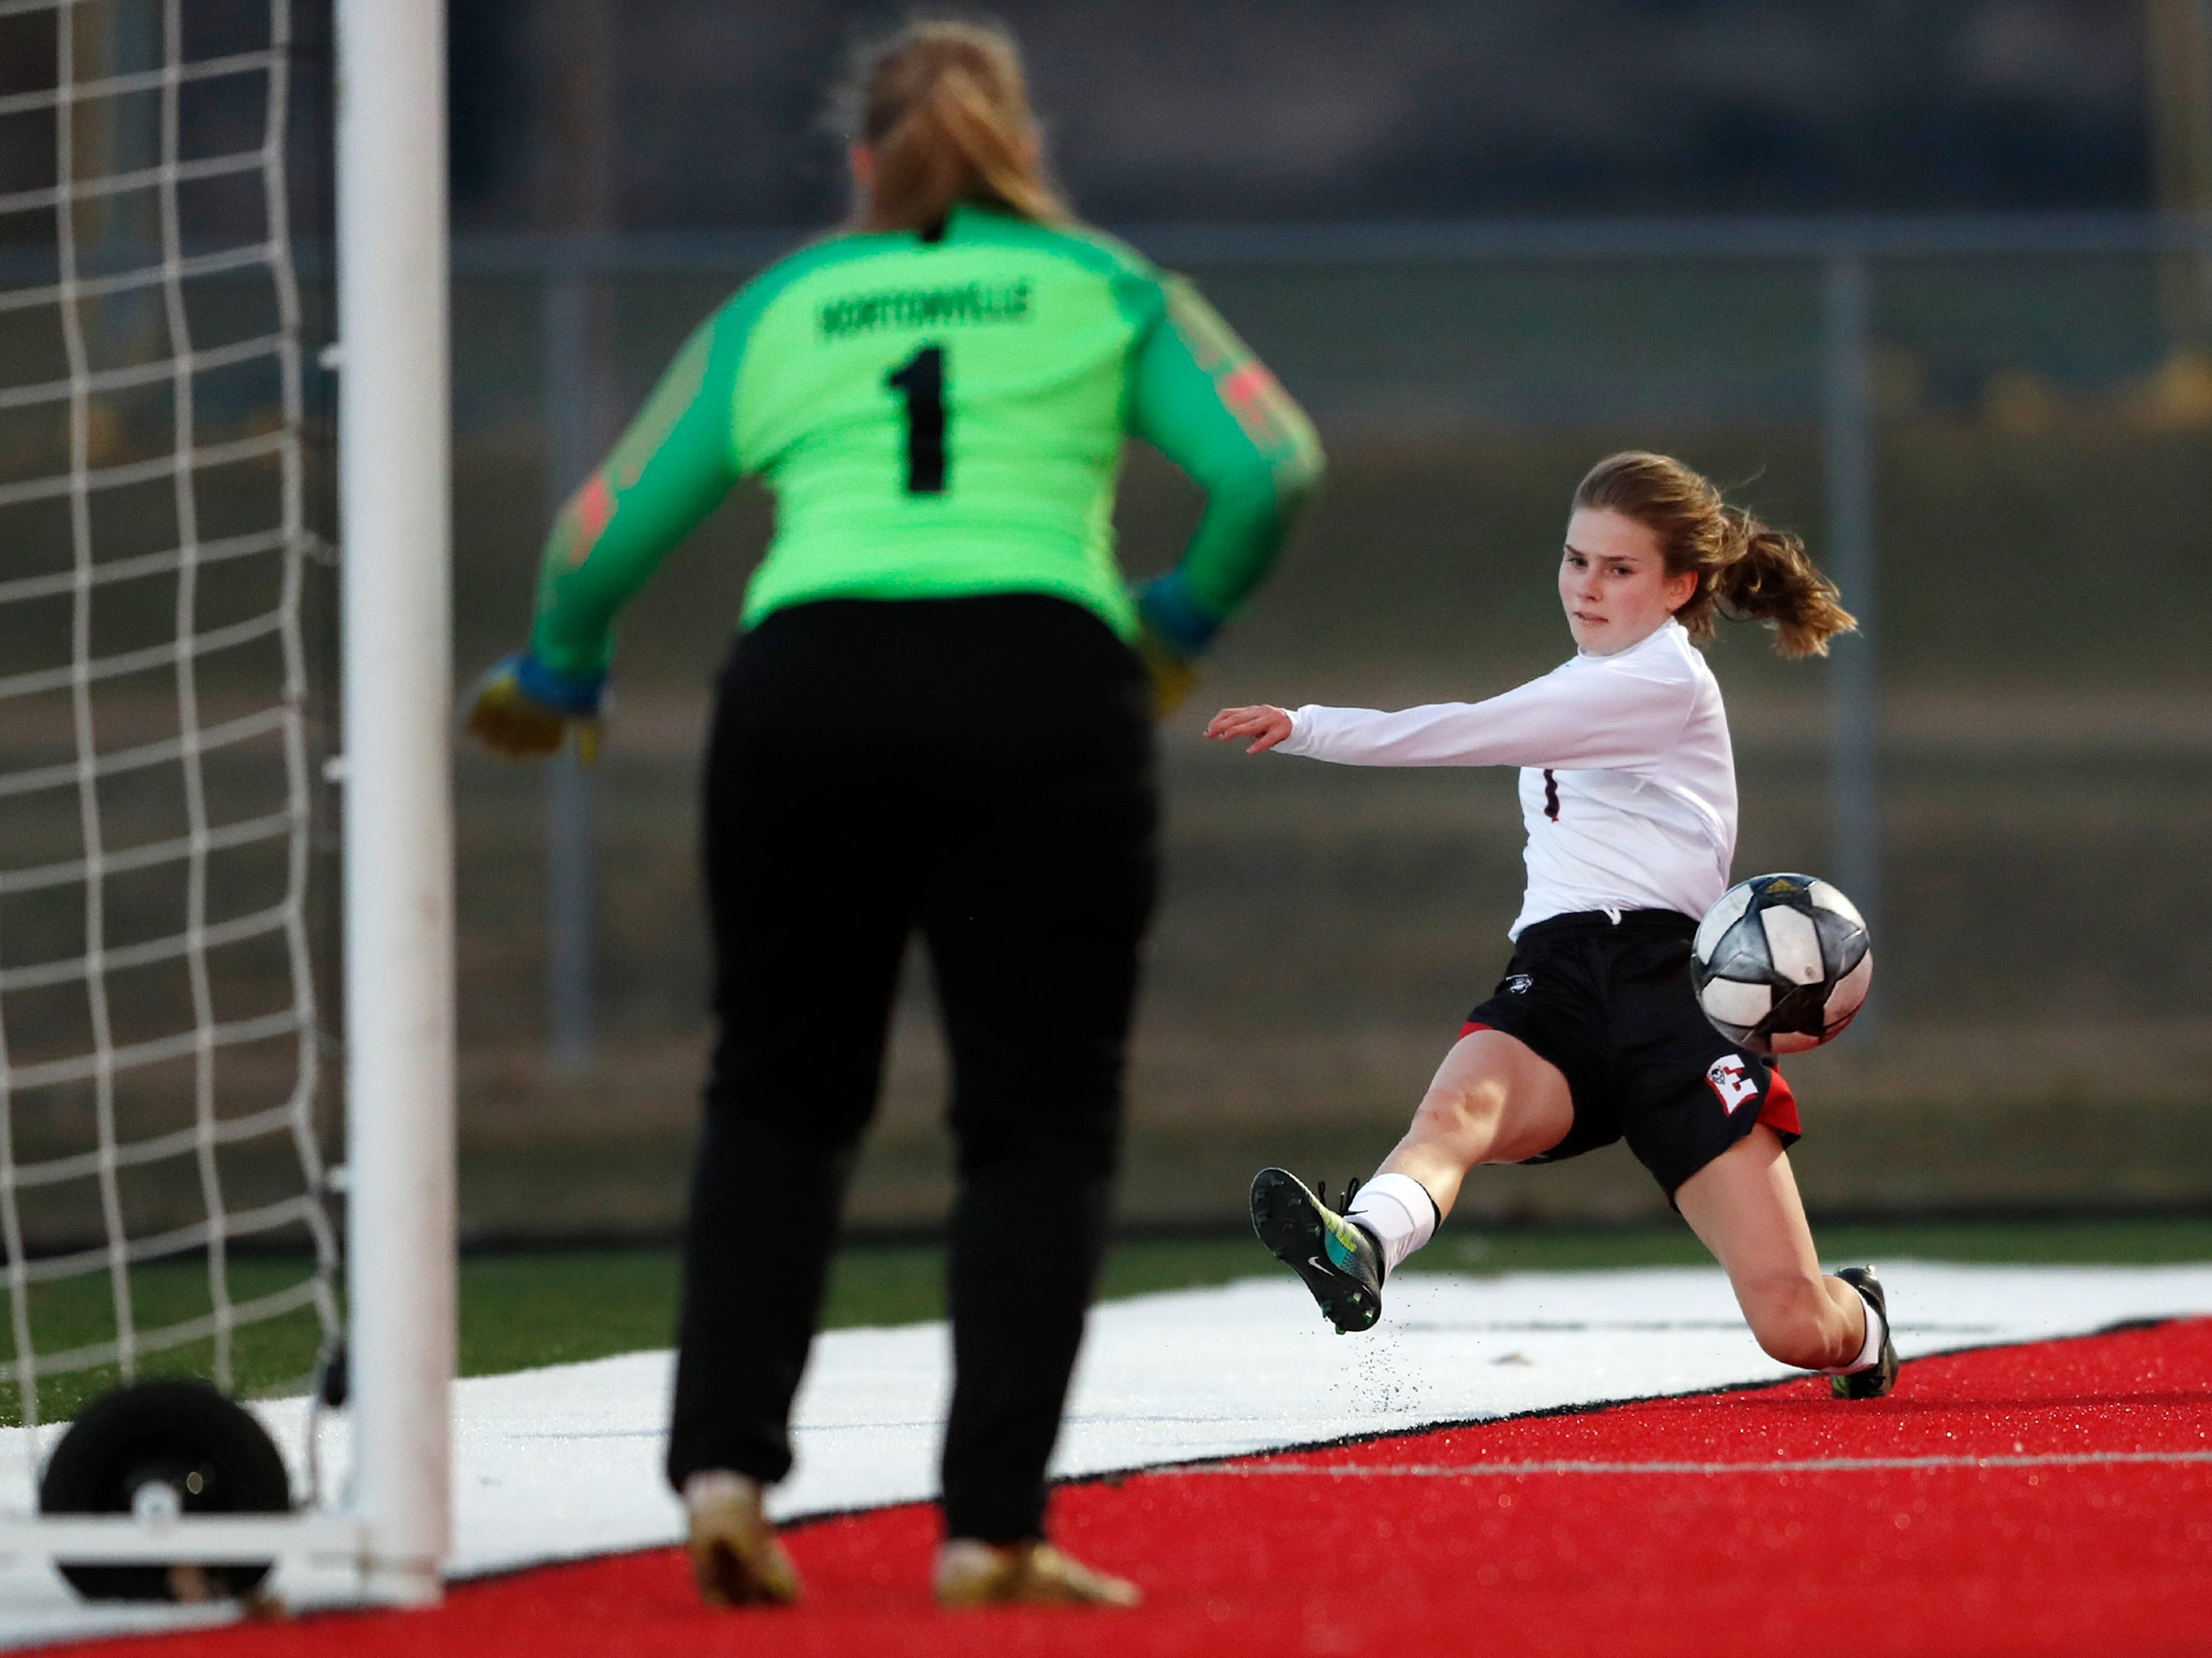 Green Bay East High School's Ellena Gallegas passes the ball into the box during their match against Hortonville High School Monday, April 8, 2019, in Hortonville, Wis. Danny Damiani/USA TODAY NETWORK-Wisconsin